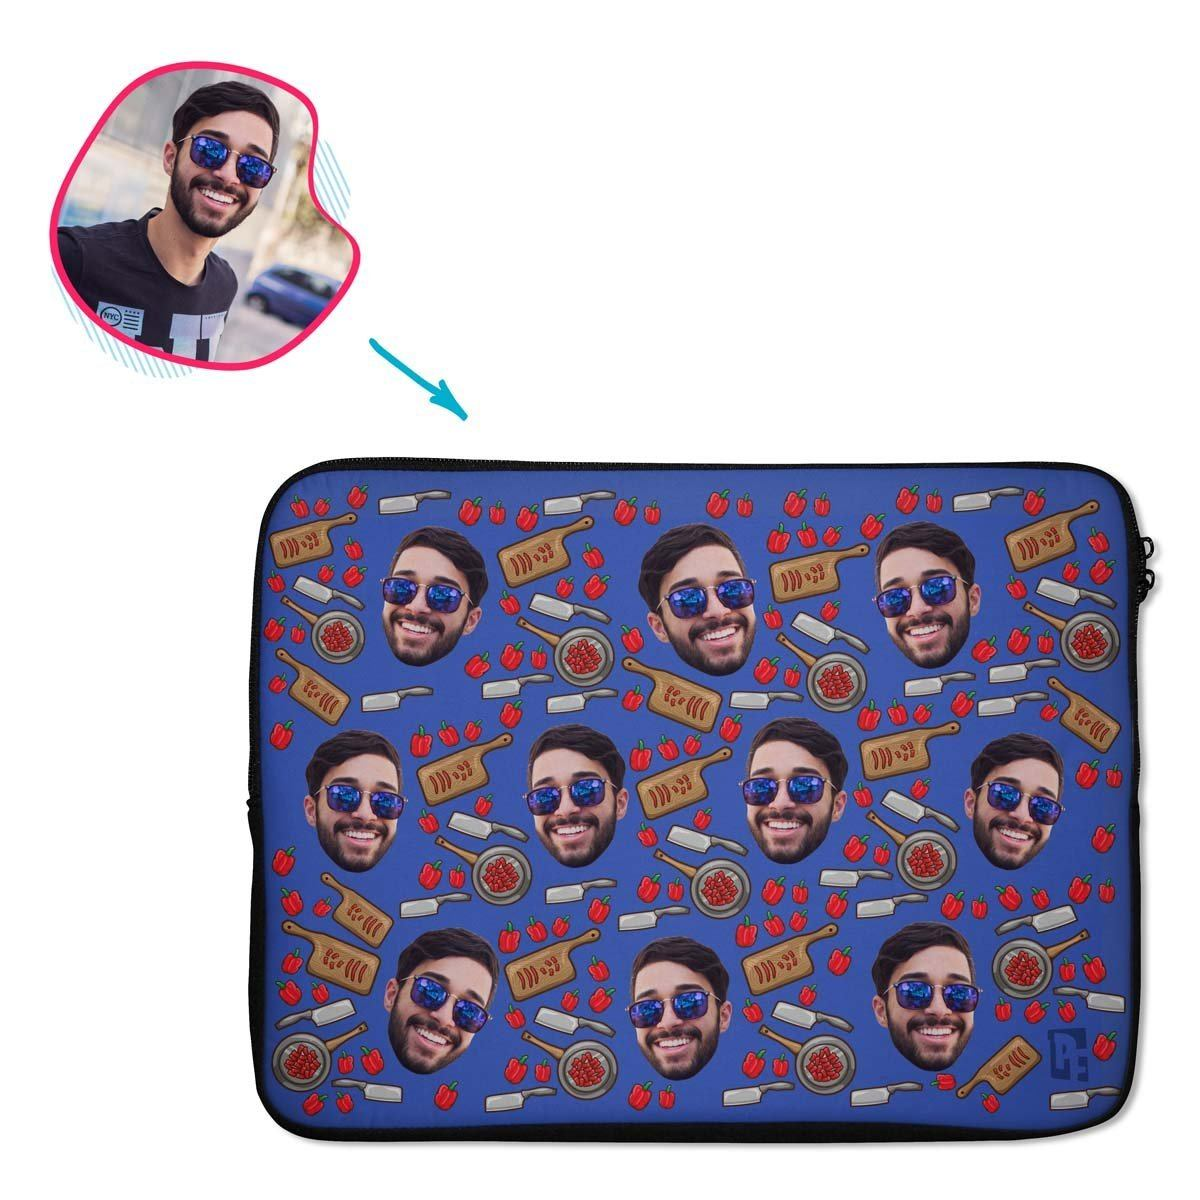 darkblue Сooking laptop sleeve personalized with photo of face printed on them